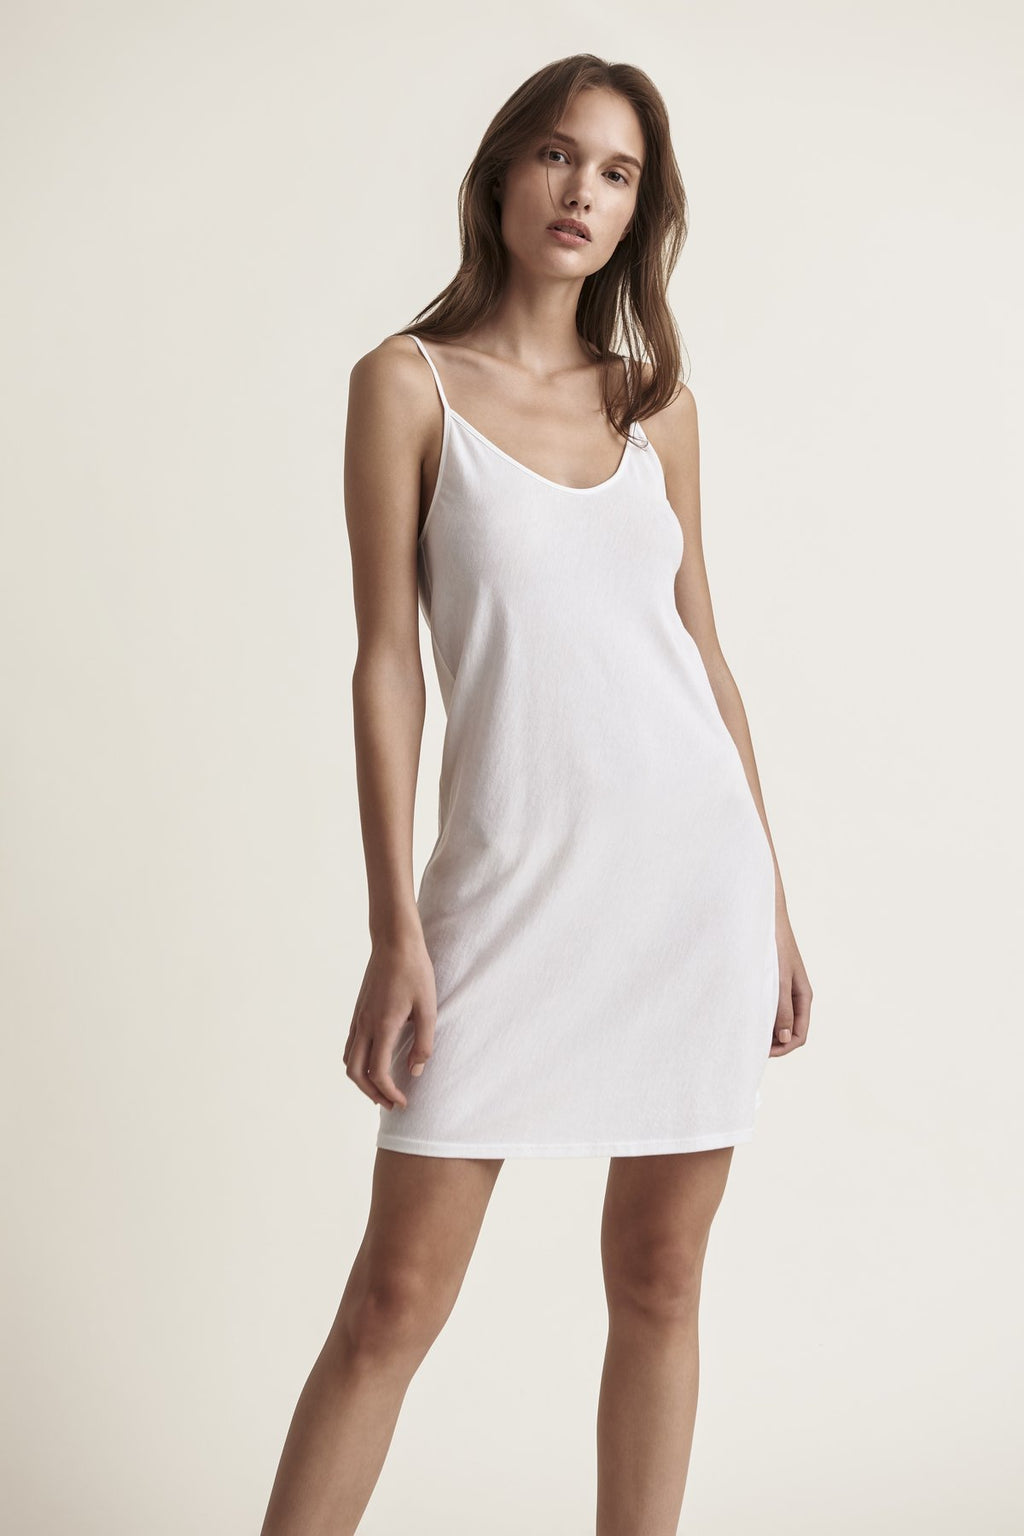 Skin Sexy Pima Cotton Slip in White